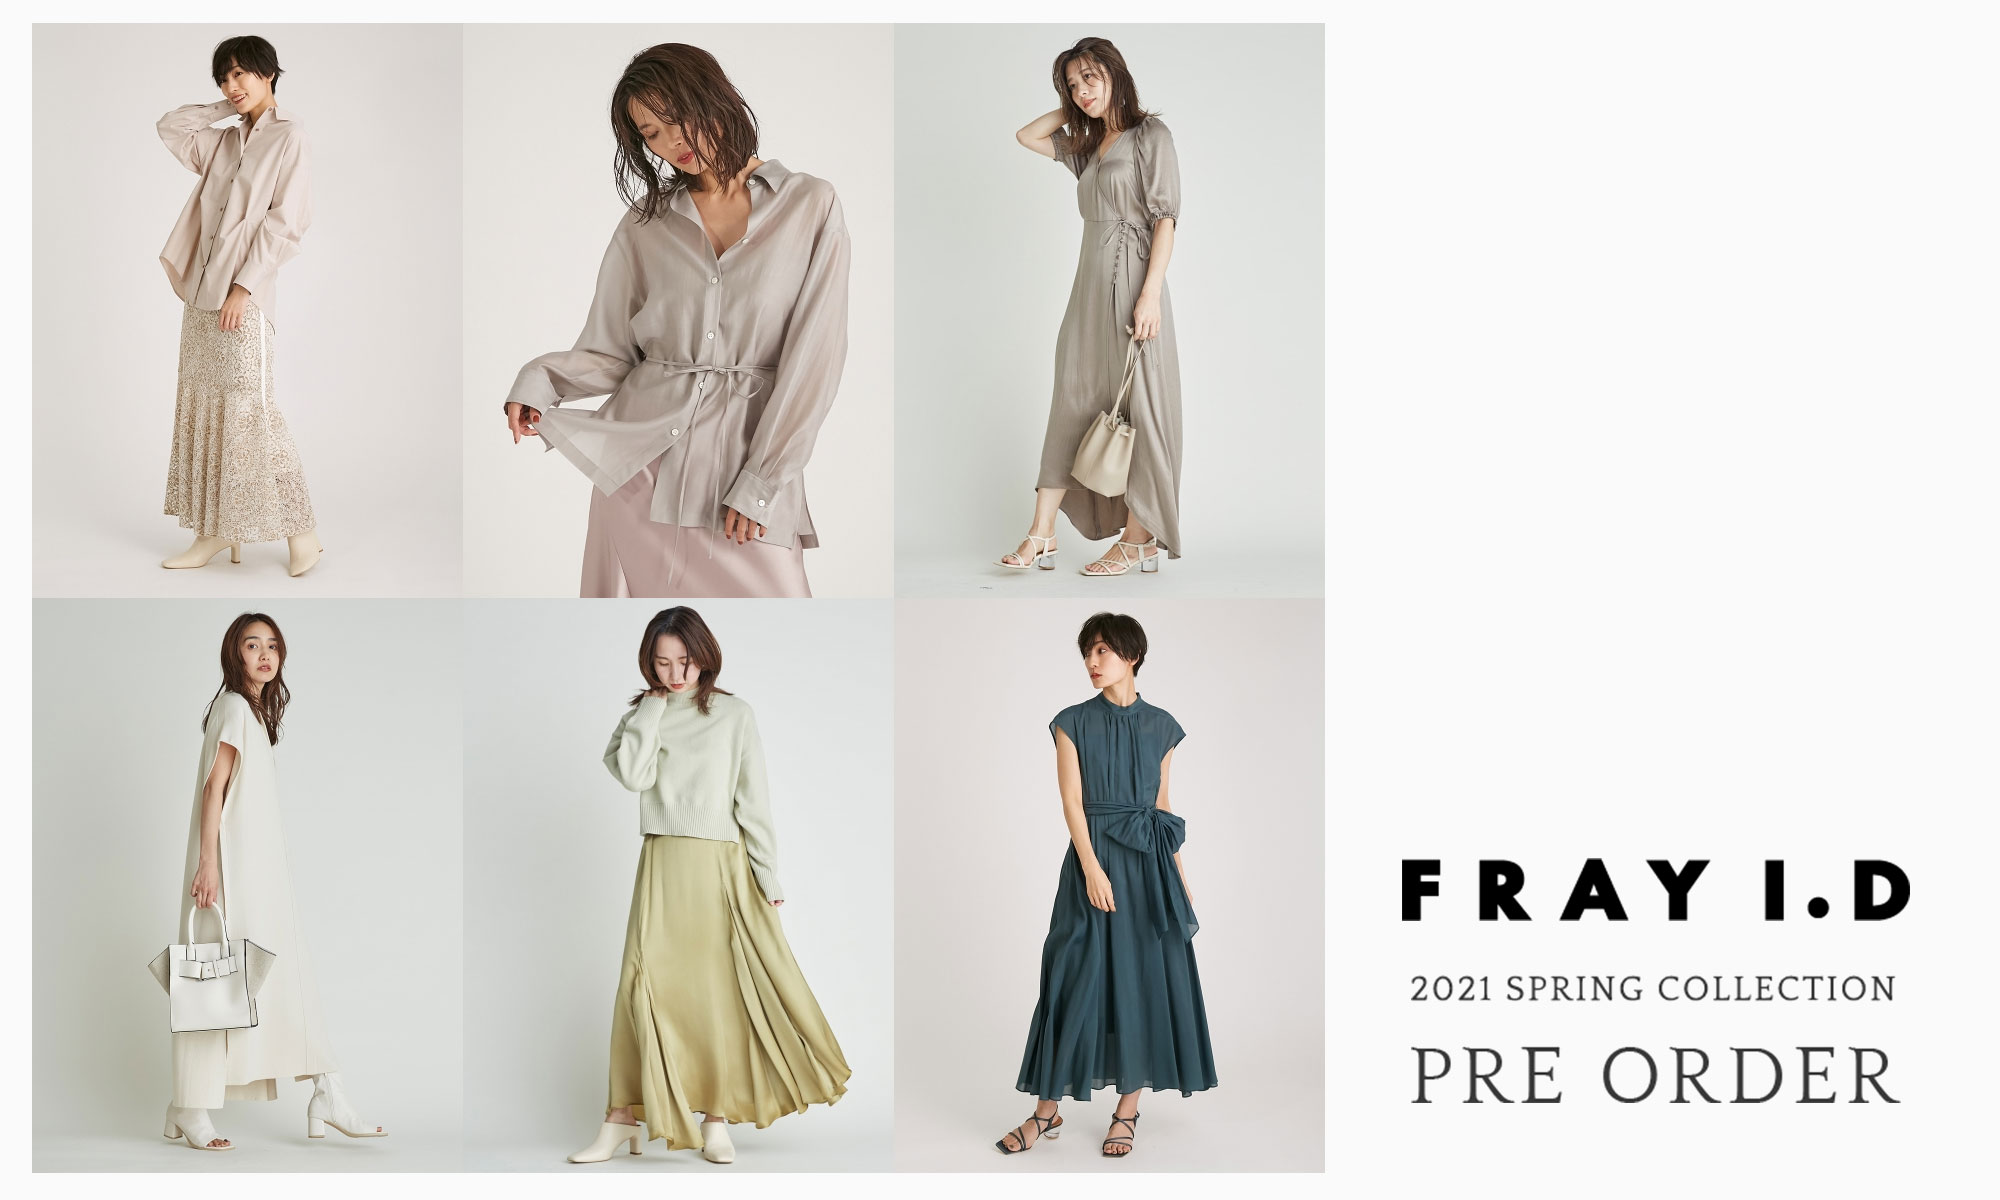 FRAY I.D 2021 spring collection pre-order フレイアイディー 21年 春夏